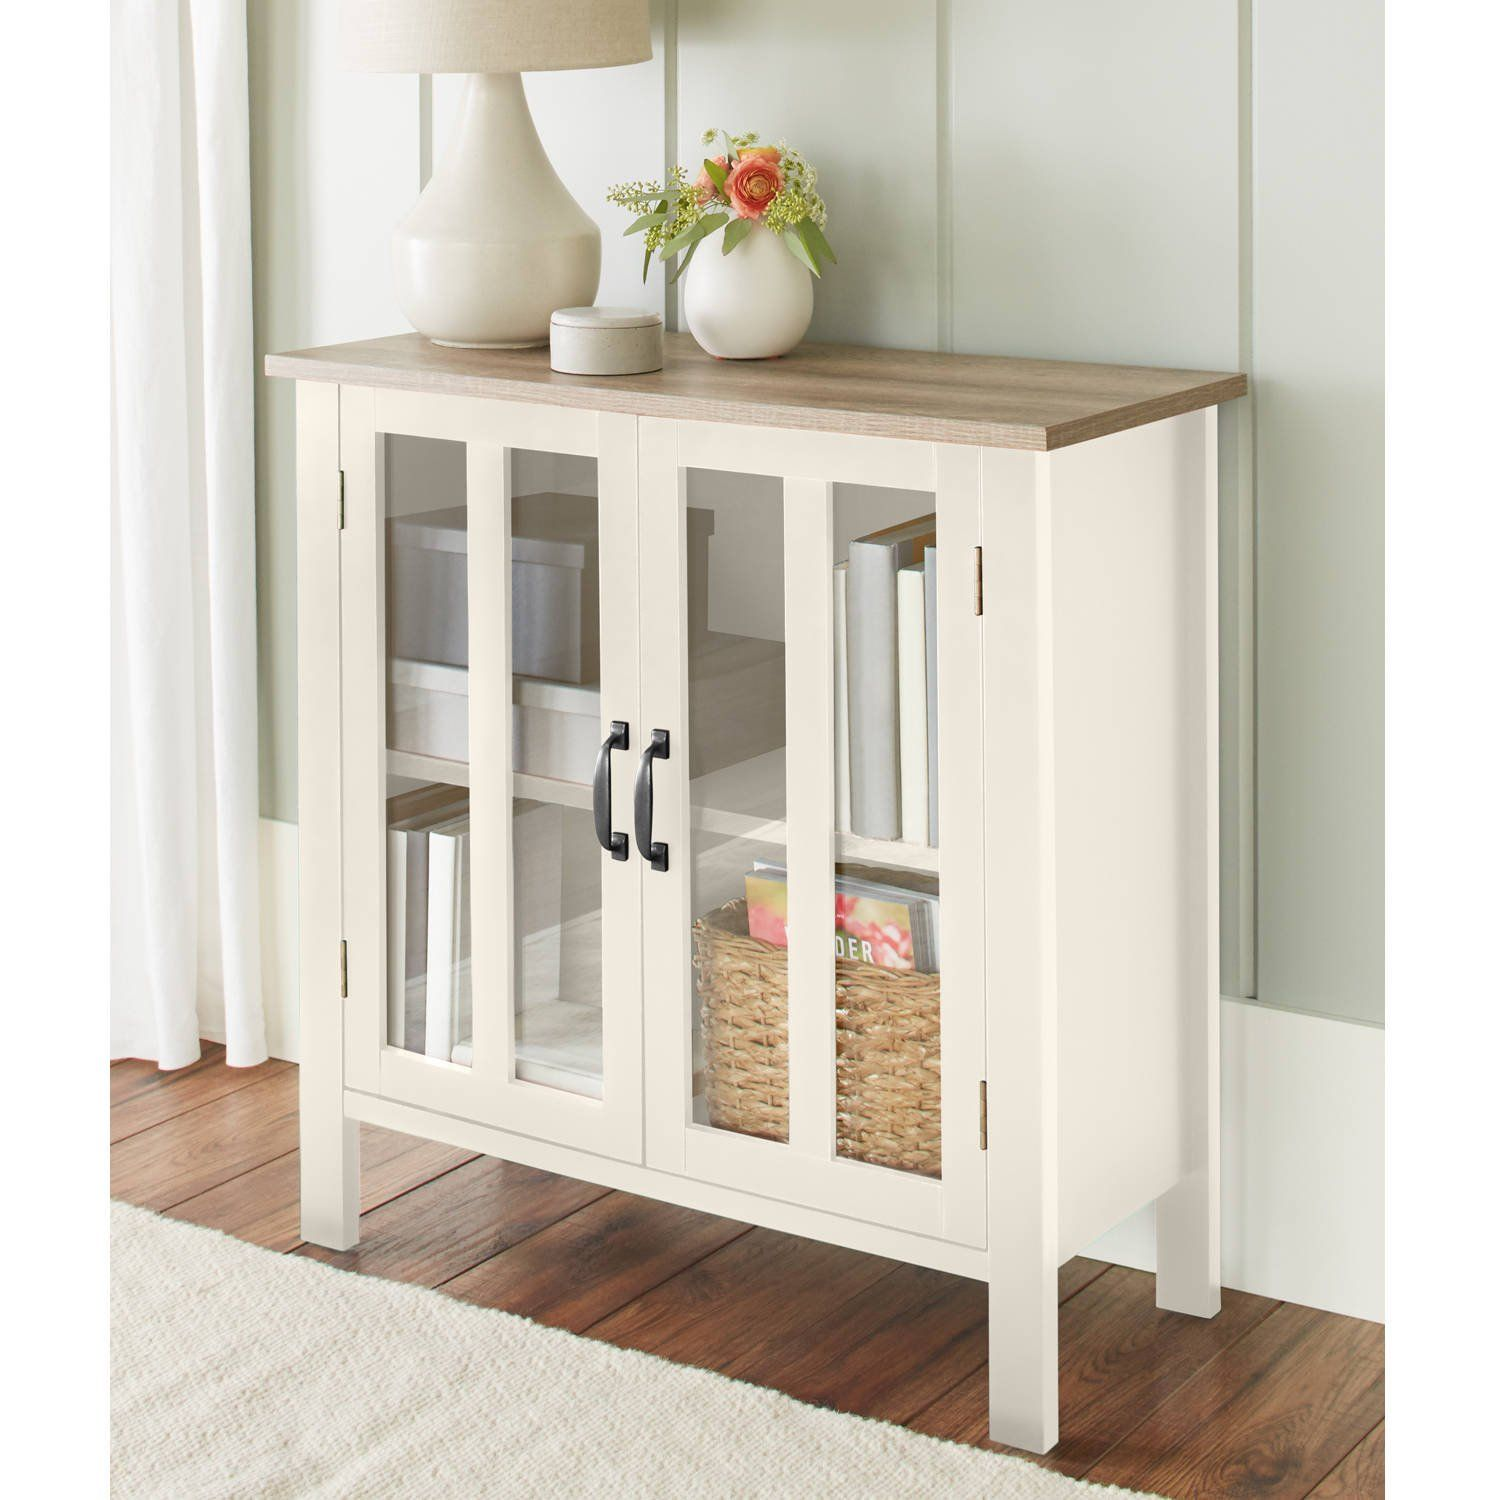 eacdcc35afdcf42324b66cbe0e5a8e72 - Better Homes And Gardens Bedford Accent Table